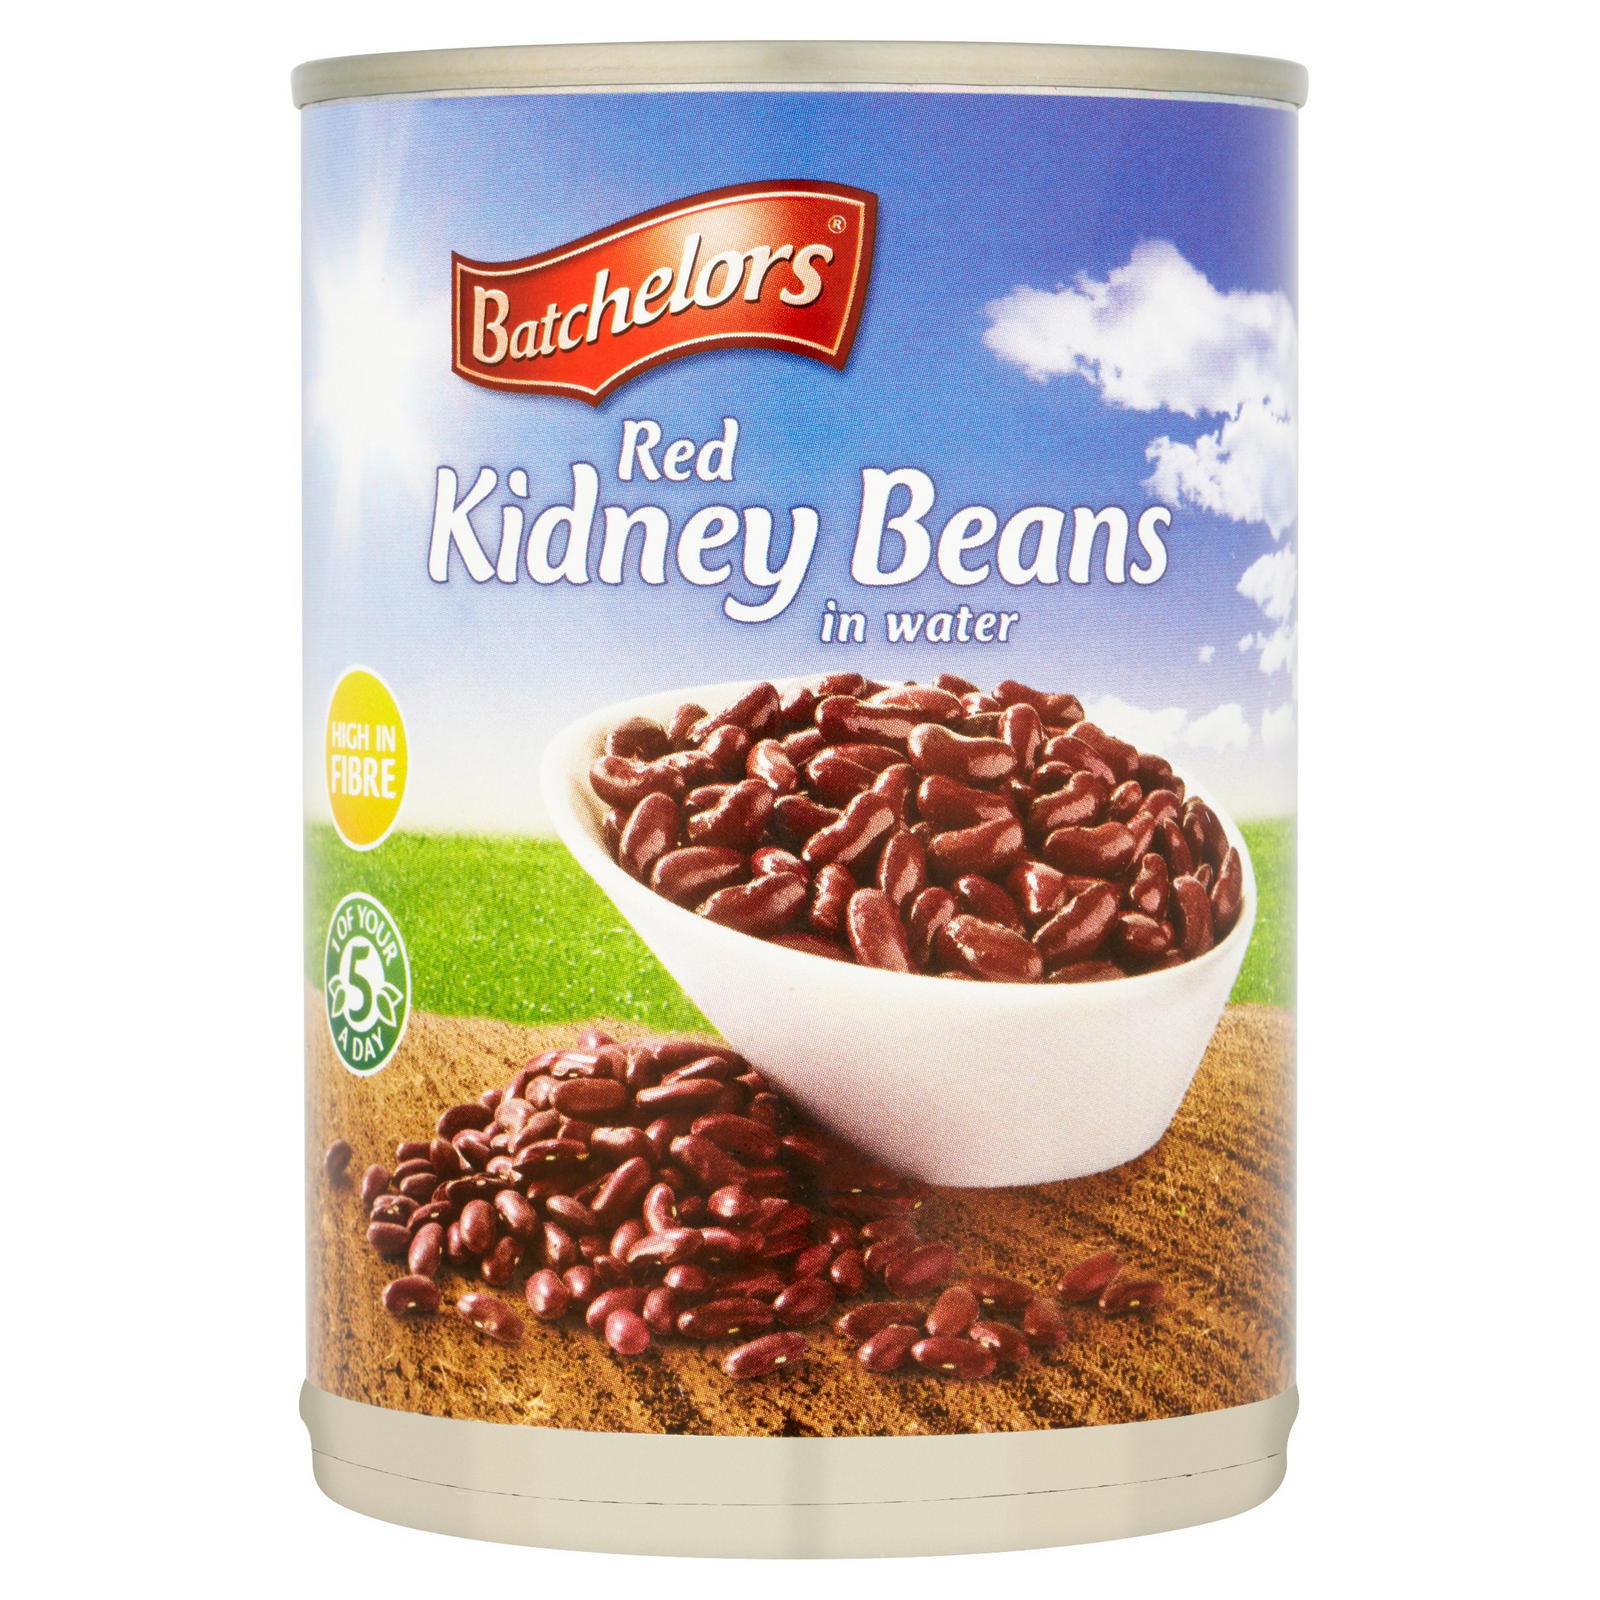 Batchelors Red Kidney Beans In Water 400g Tinned Tomatoes Vegetables Iceland Foods